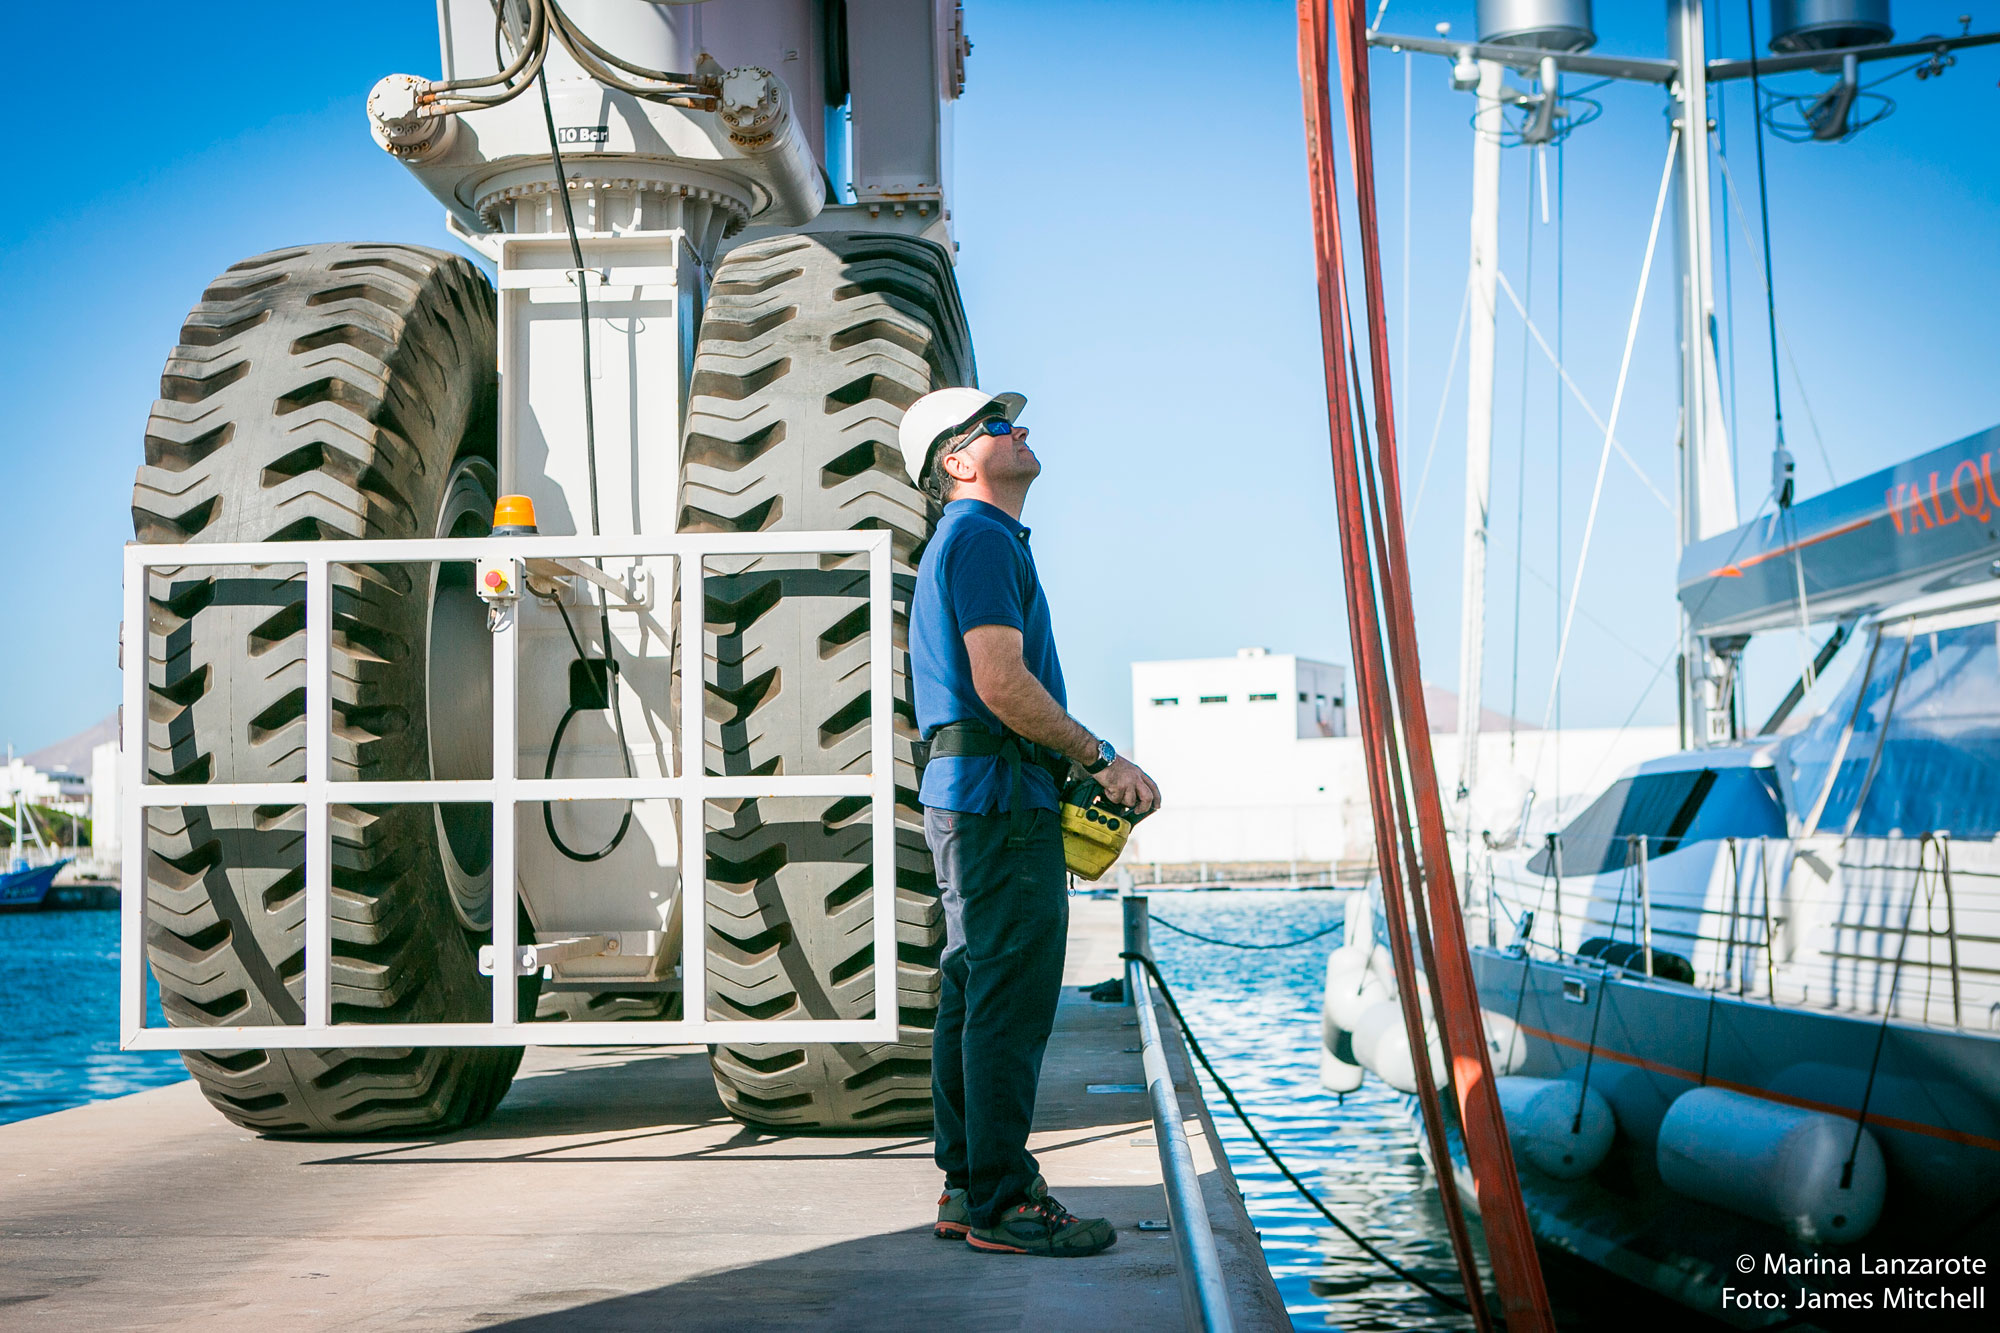 Man wearing a blue shirt and white hat near very large tires using a remote control to maneuver a yacht lift.